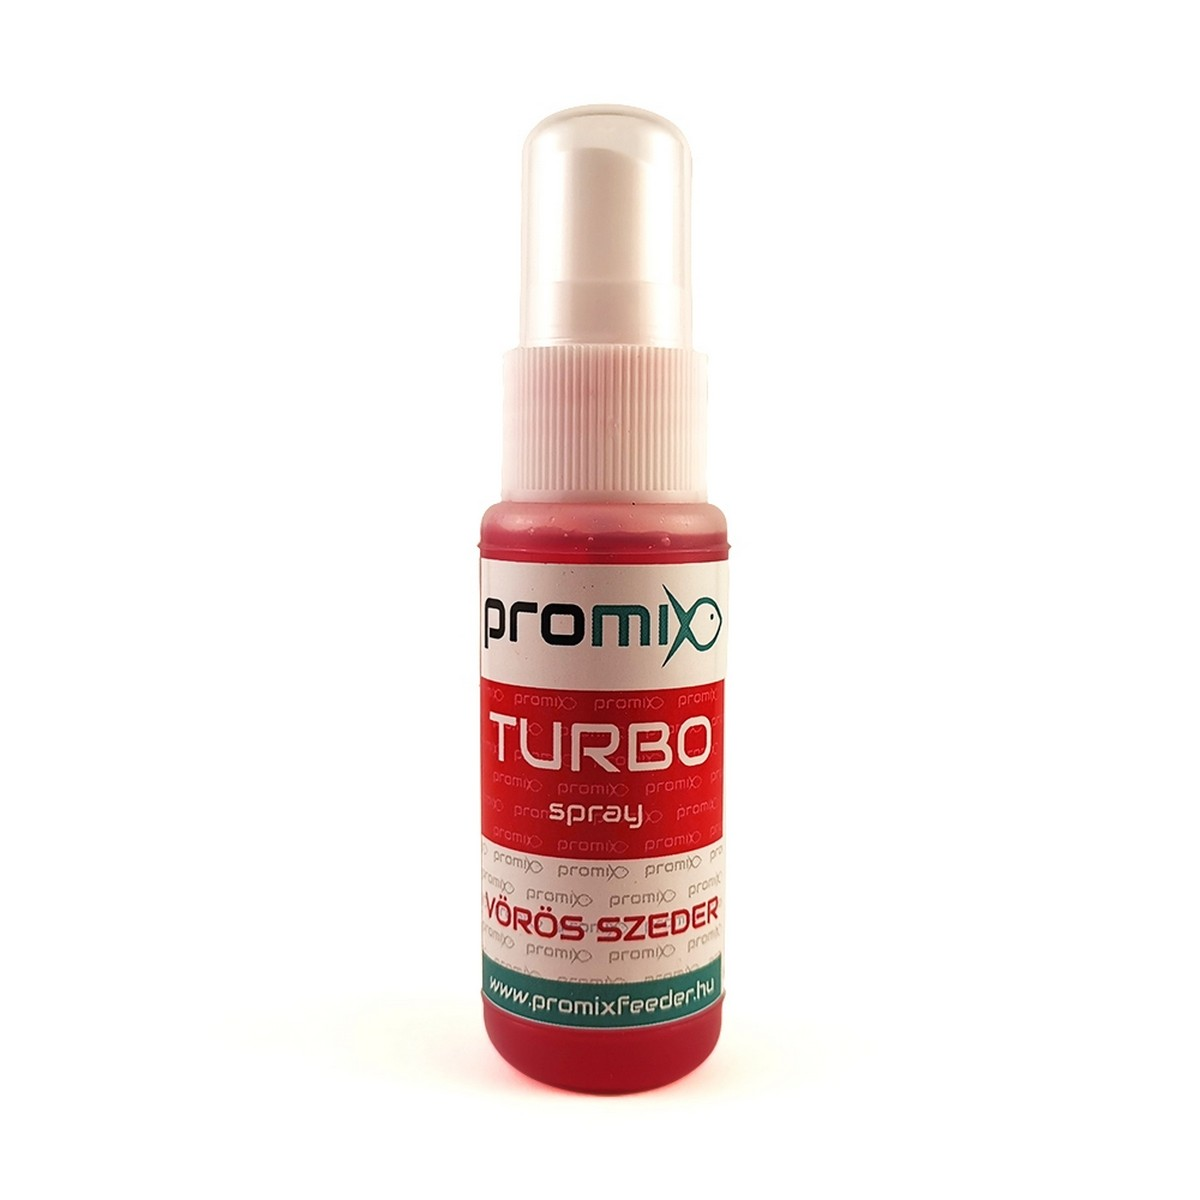 PROMIX TURBO SPRAY VÖRÖS SZEDER 30ML